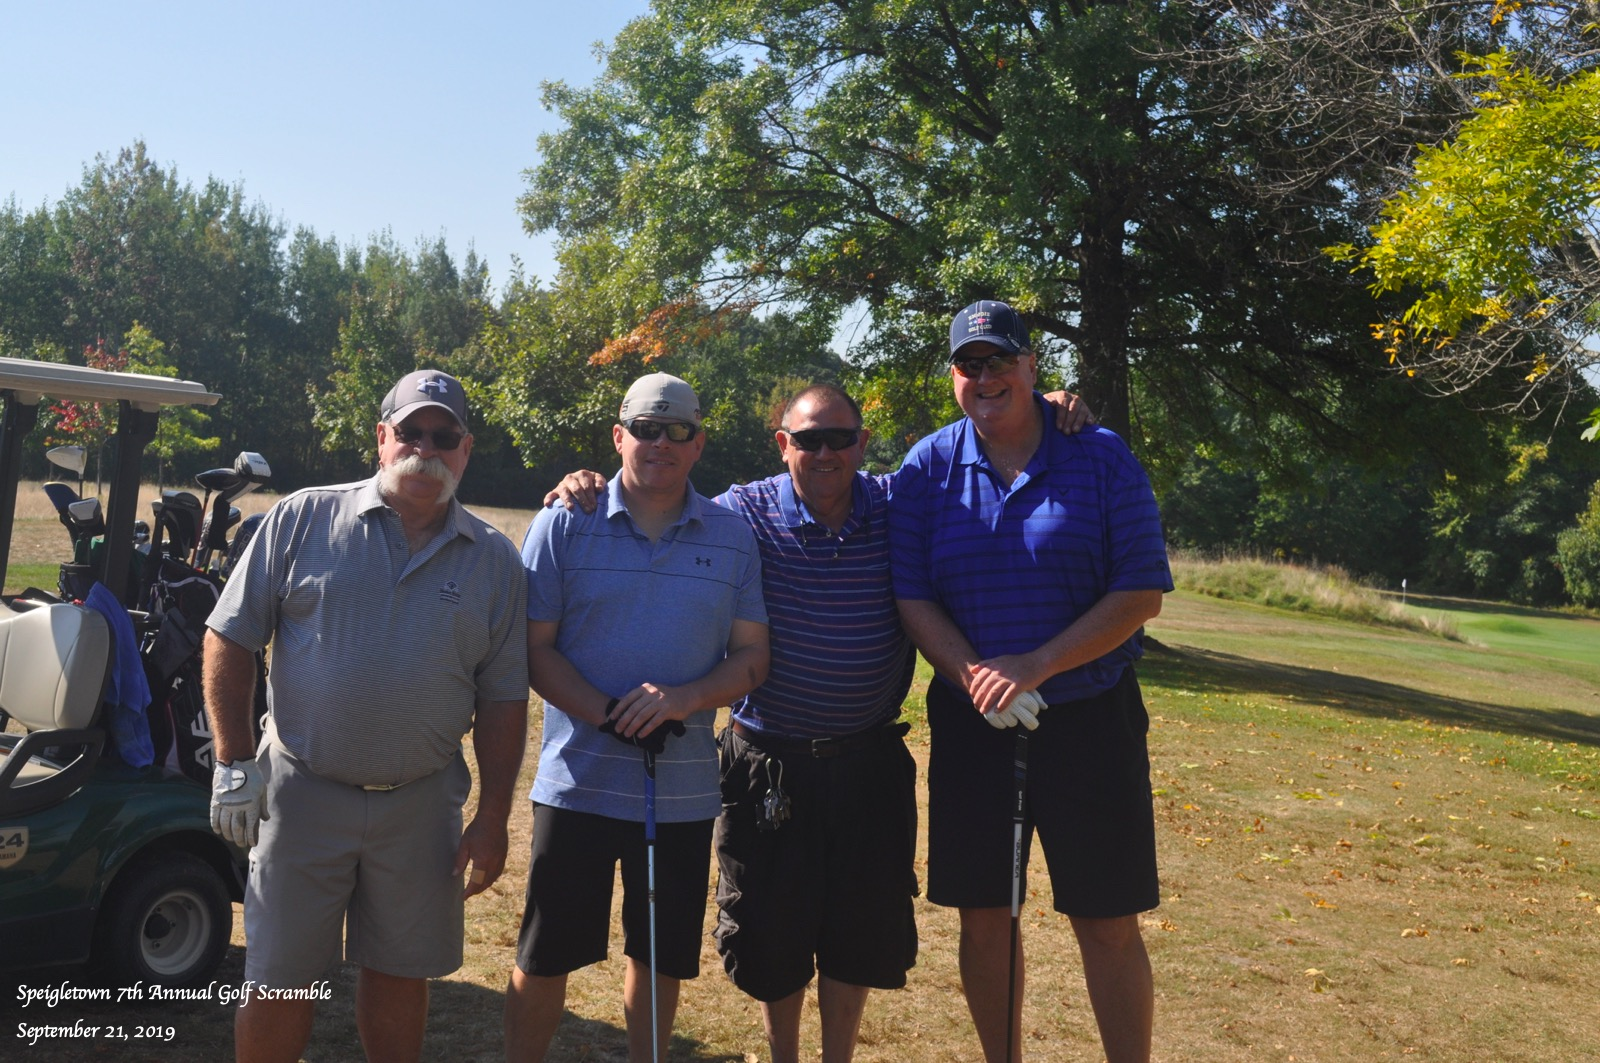 Speigletown Golf Scramble 2019 Teams20